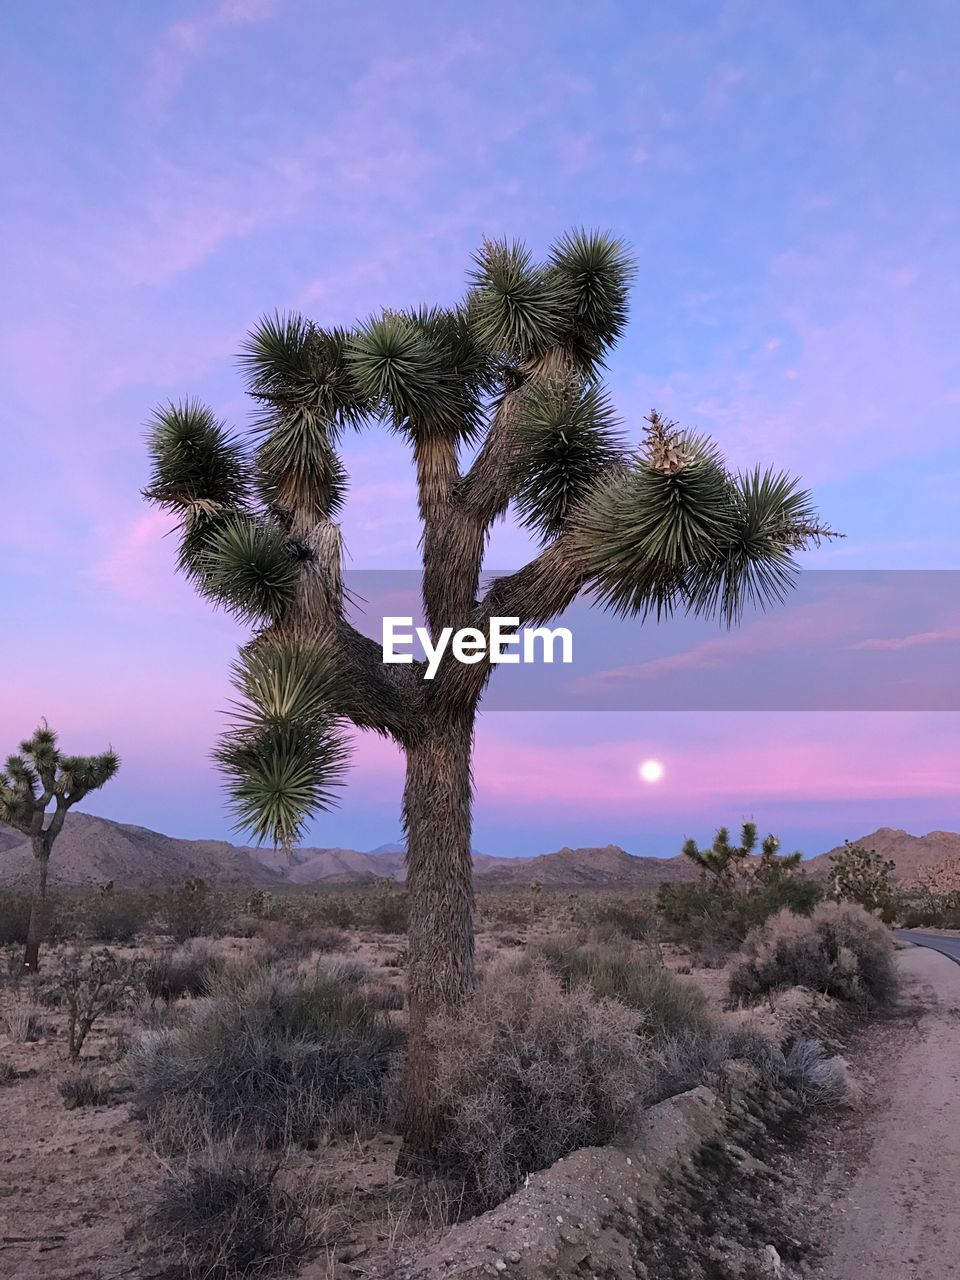 plant, sky, tree, beauty in nature, tranquility, growth, tranquil scene, land, scenics - nature, nature, non-urban scene, desert, field, environment, no people, landscape, outdoors, cactus, sunset, succulent plant, arid climate, climate